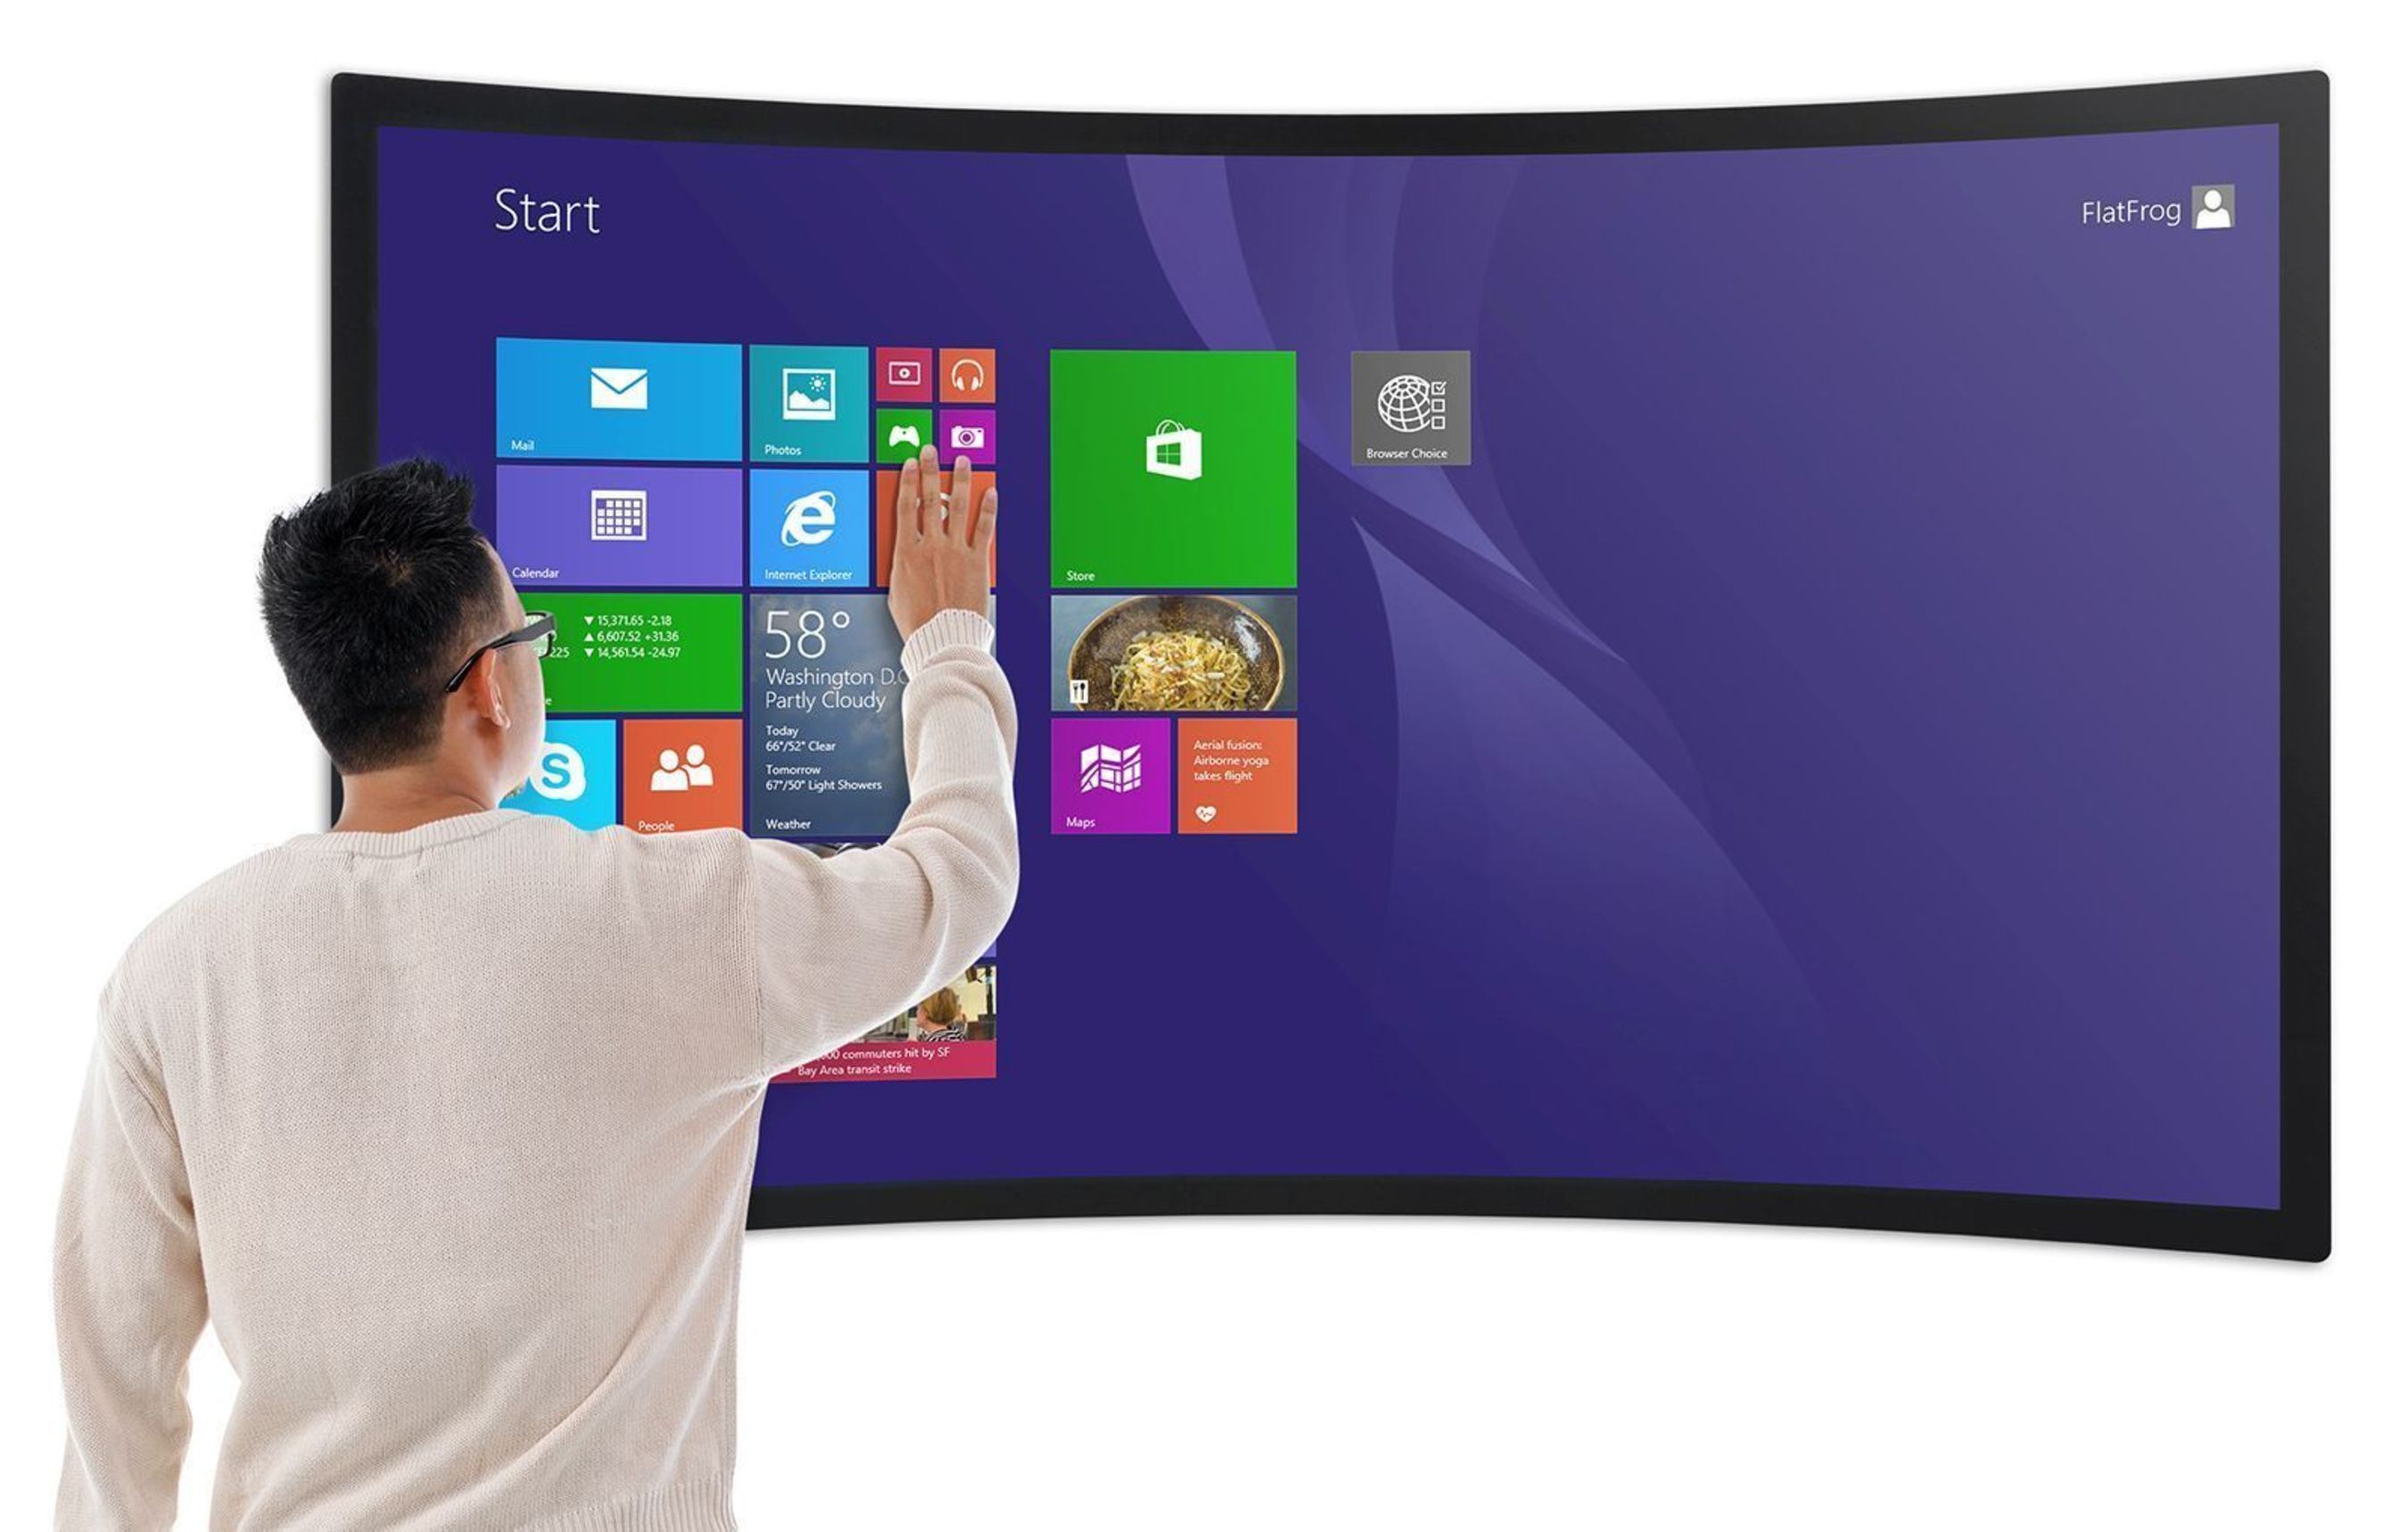 """FlatFrog InGlass(TM) touchscreens support both flat and curved displays ranging from 15 to 84"""". The multi-touch technology is bezel-free and without capacitive sensors impairing the transparency. This results in perfect optical clarity suitable for high-resolution touch displays. (PRNewsFoto/FlatFrog)"""